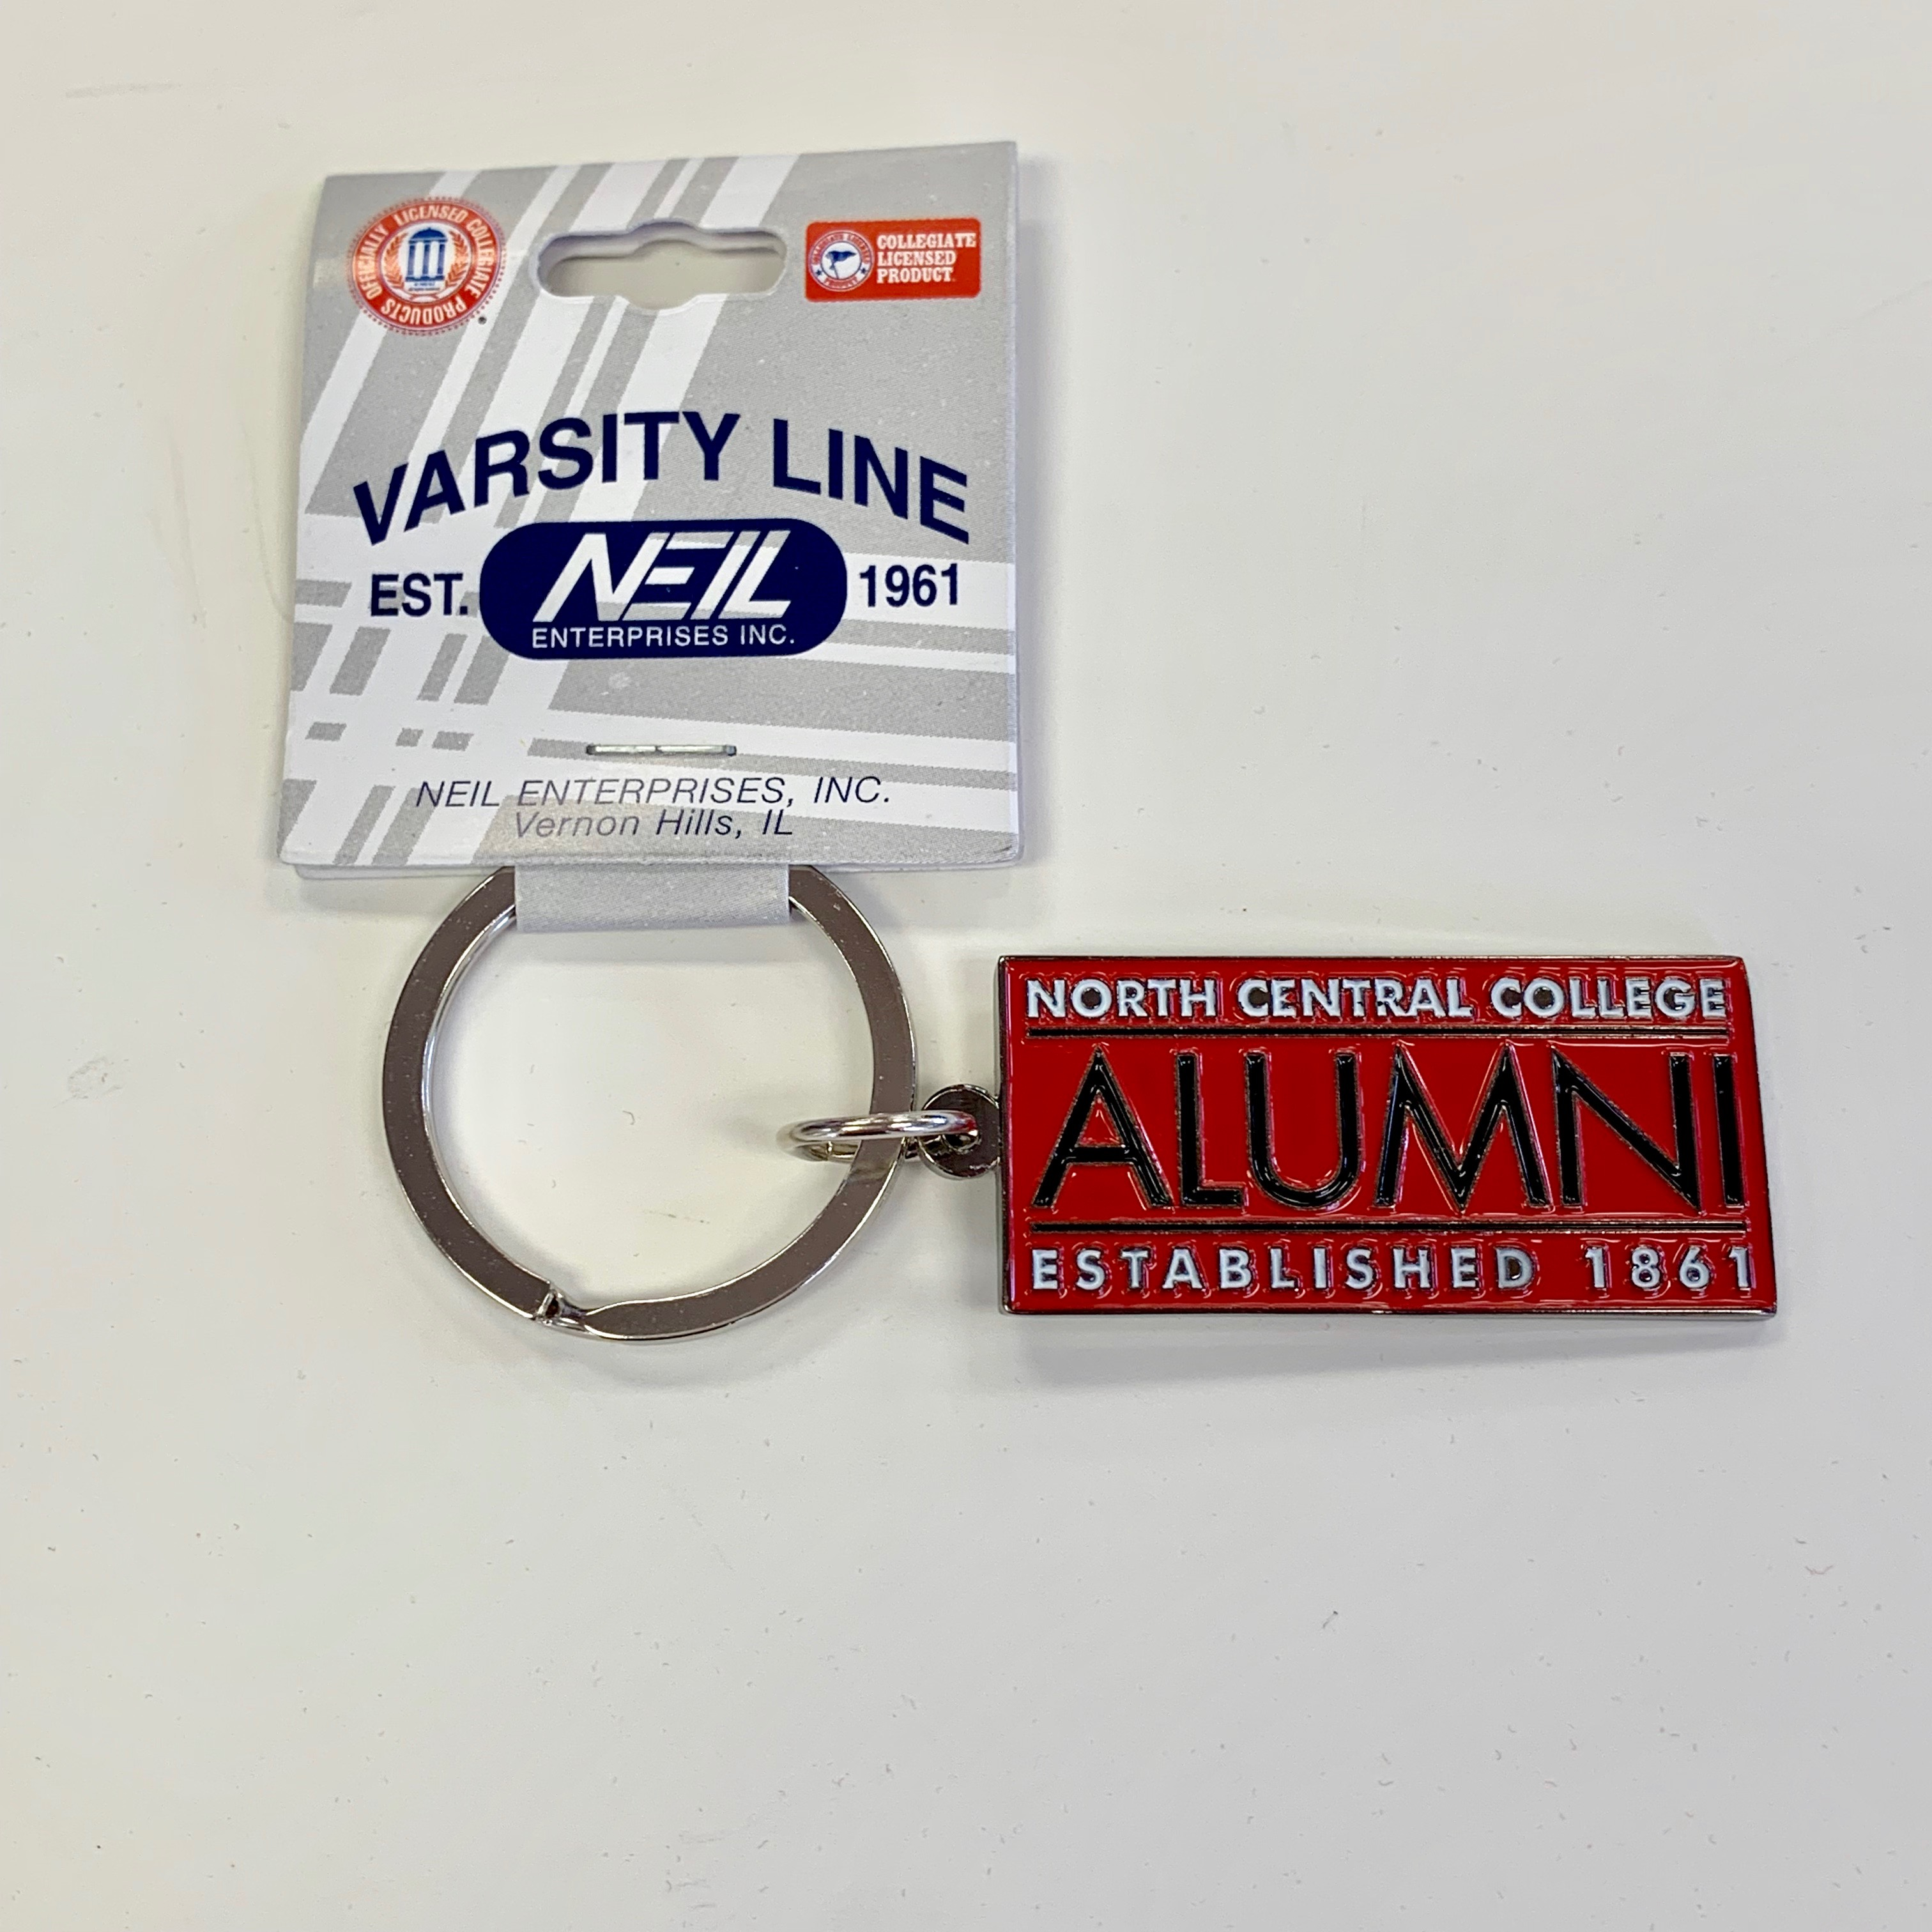 Image for the Alumni Keychain product